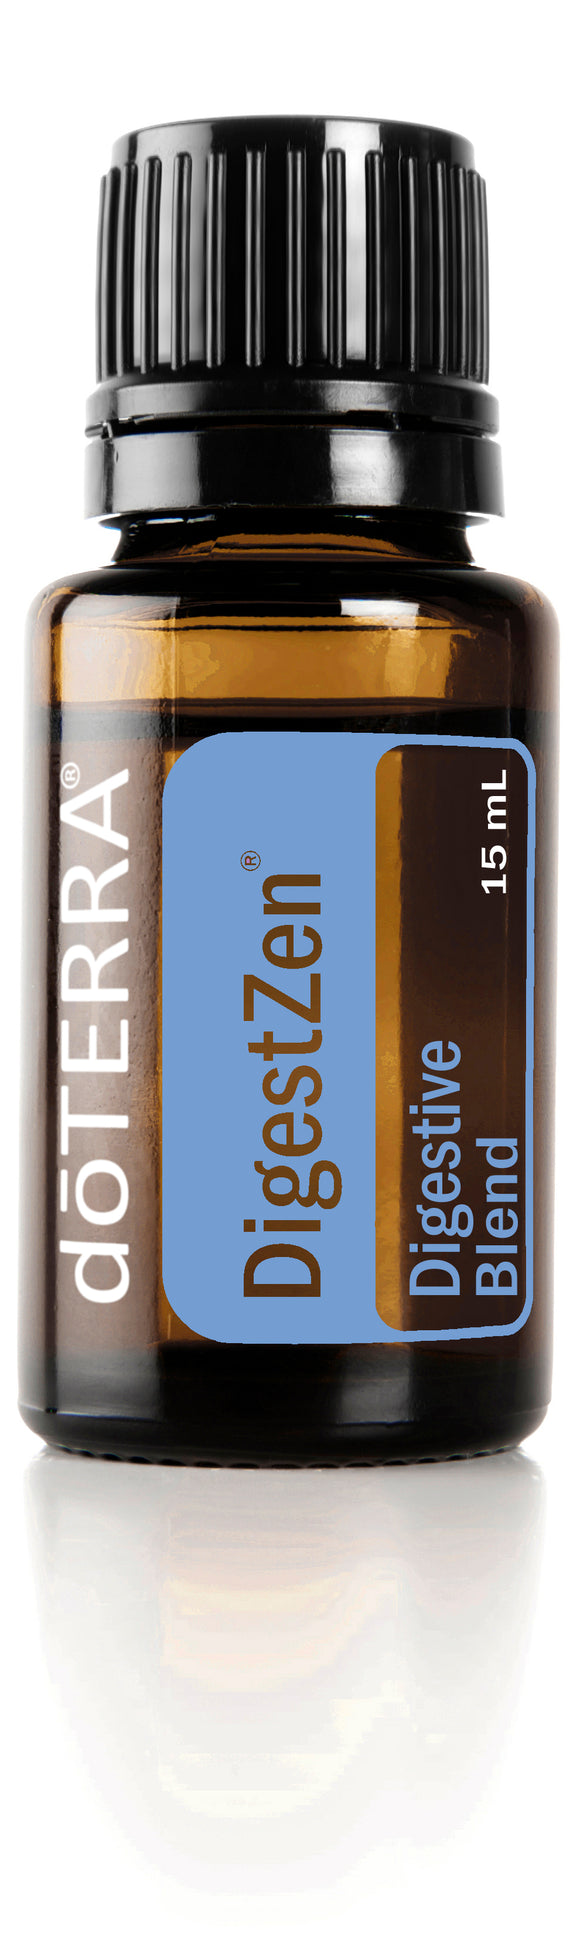 dōTERRA DigestZen Oil Blend 15ml - CUSTOM AND ESSENTIALS